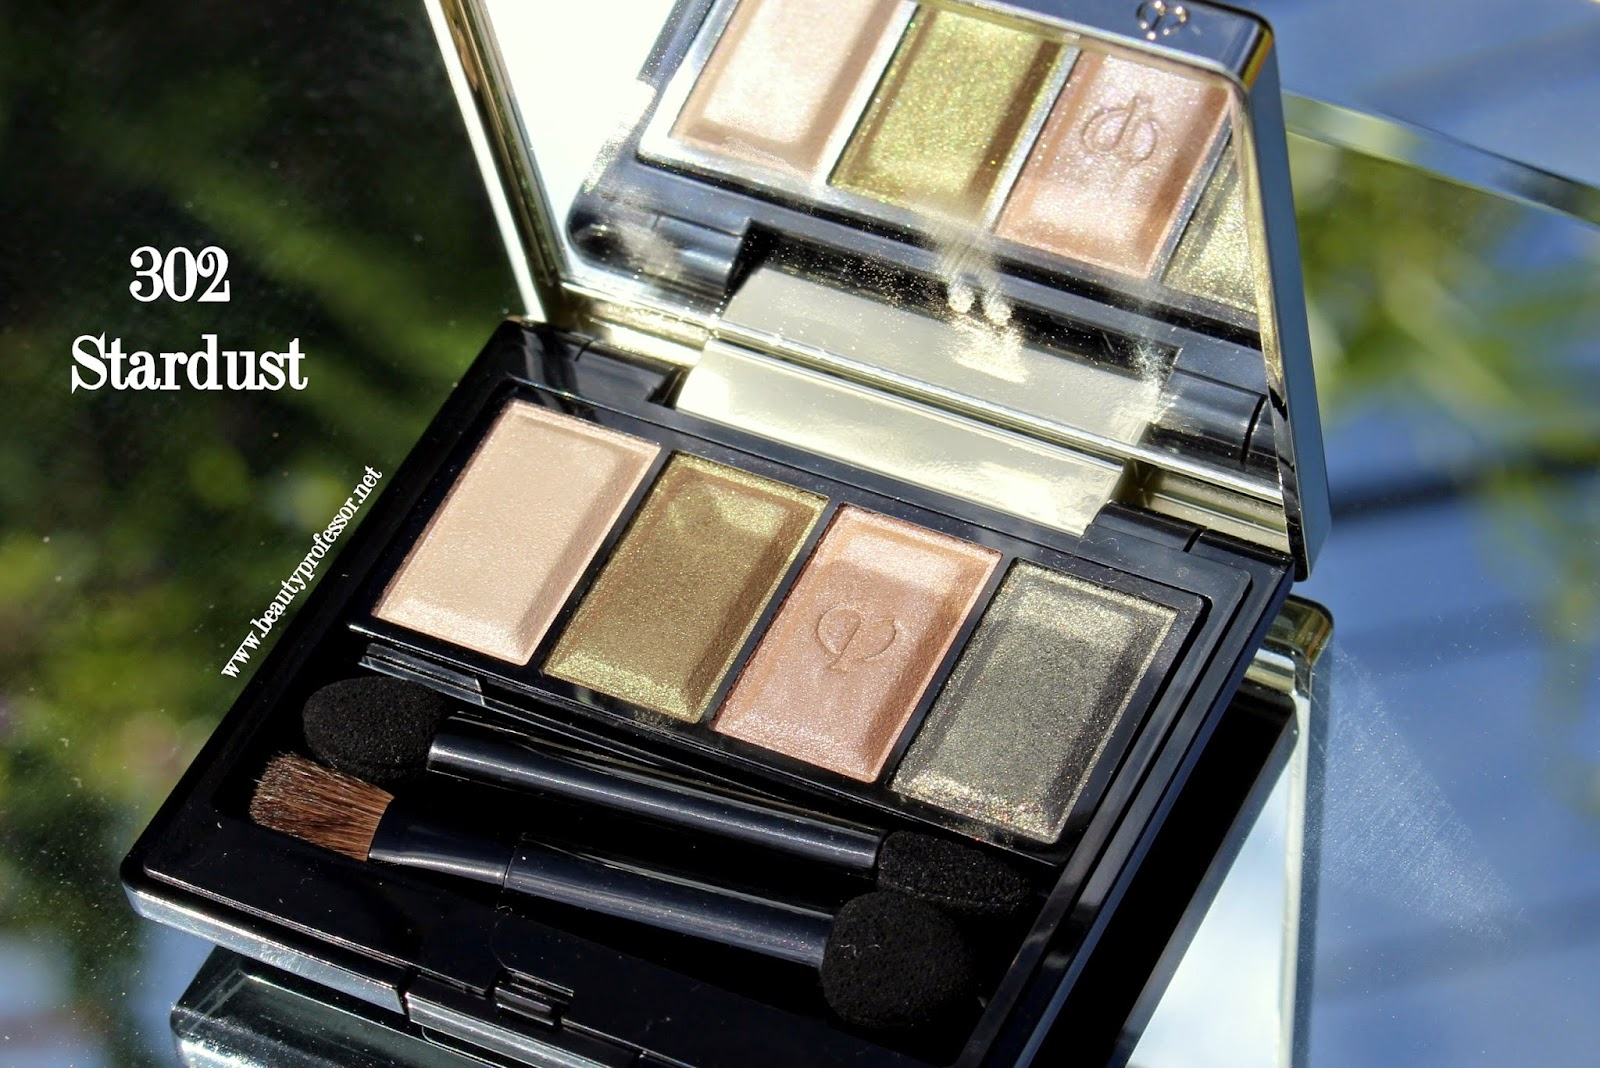 Cle de peau eye color quad 302 stardust swatches